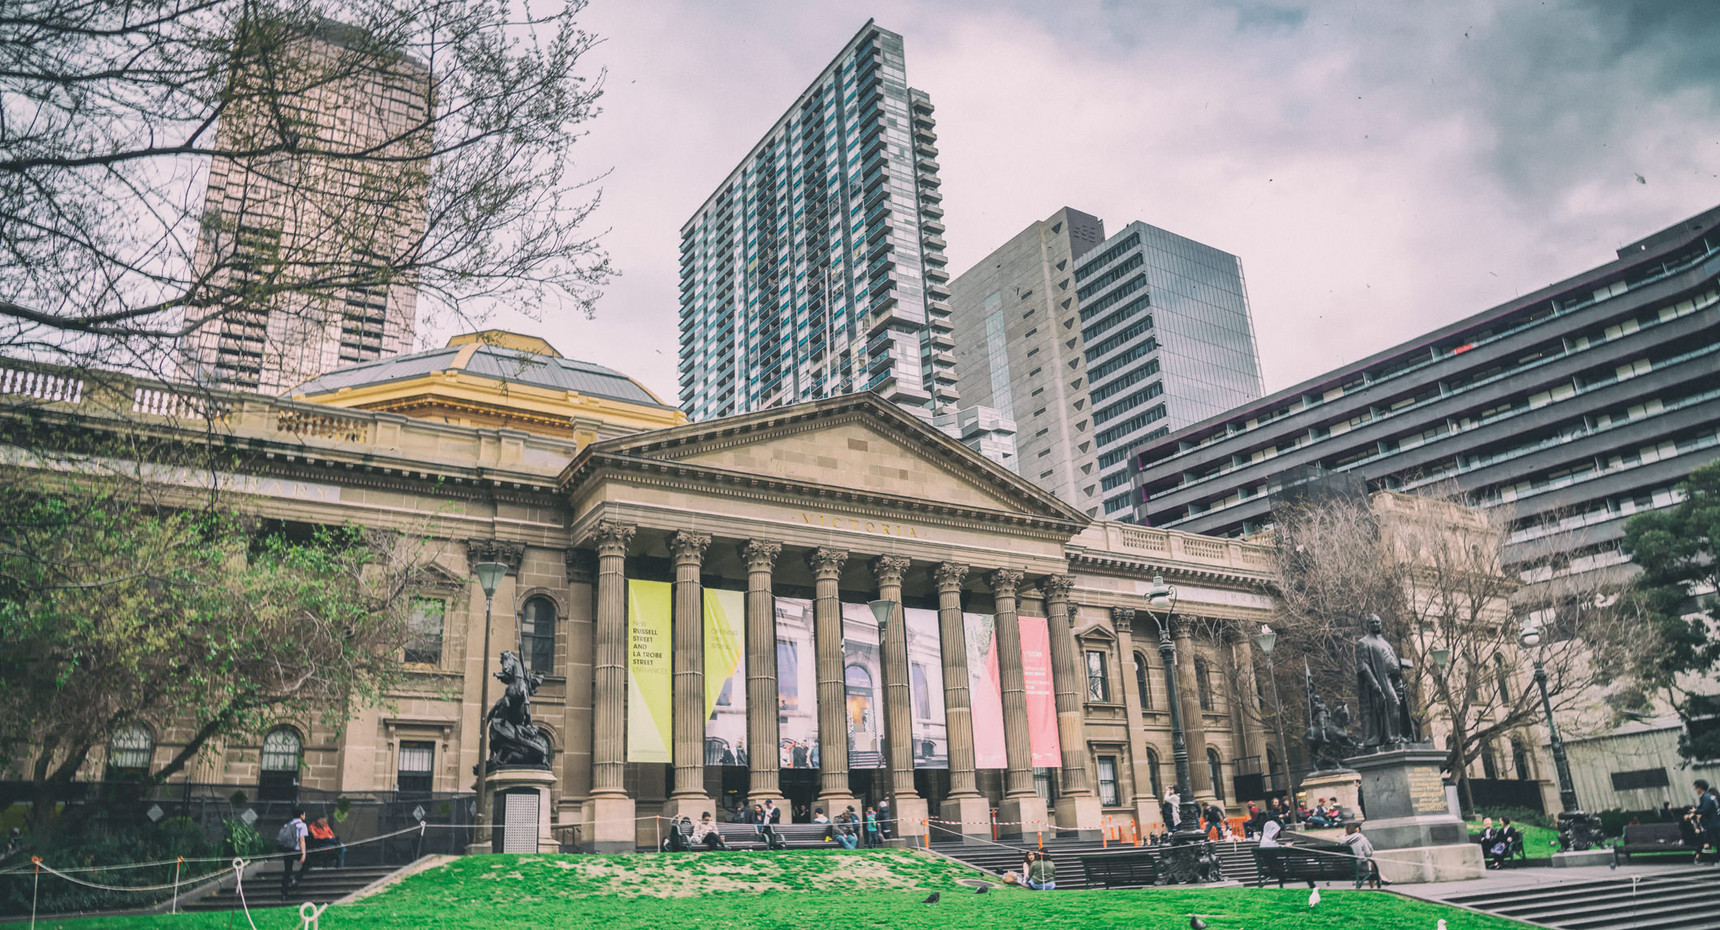 The Melbourne Public Library